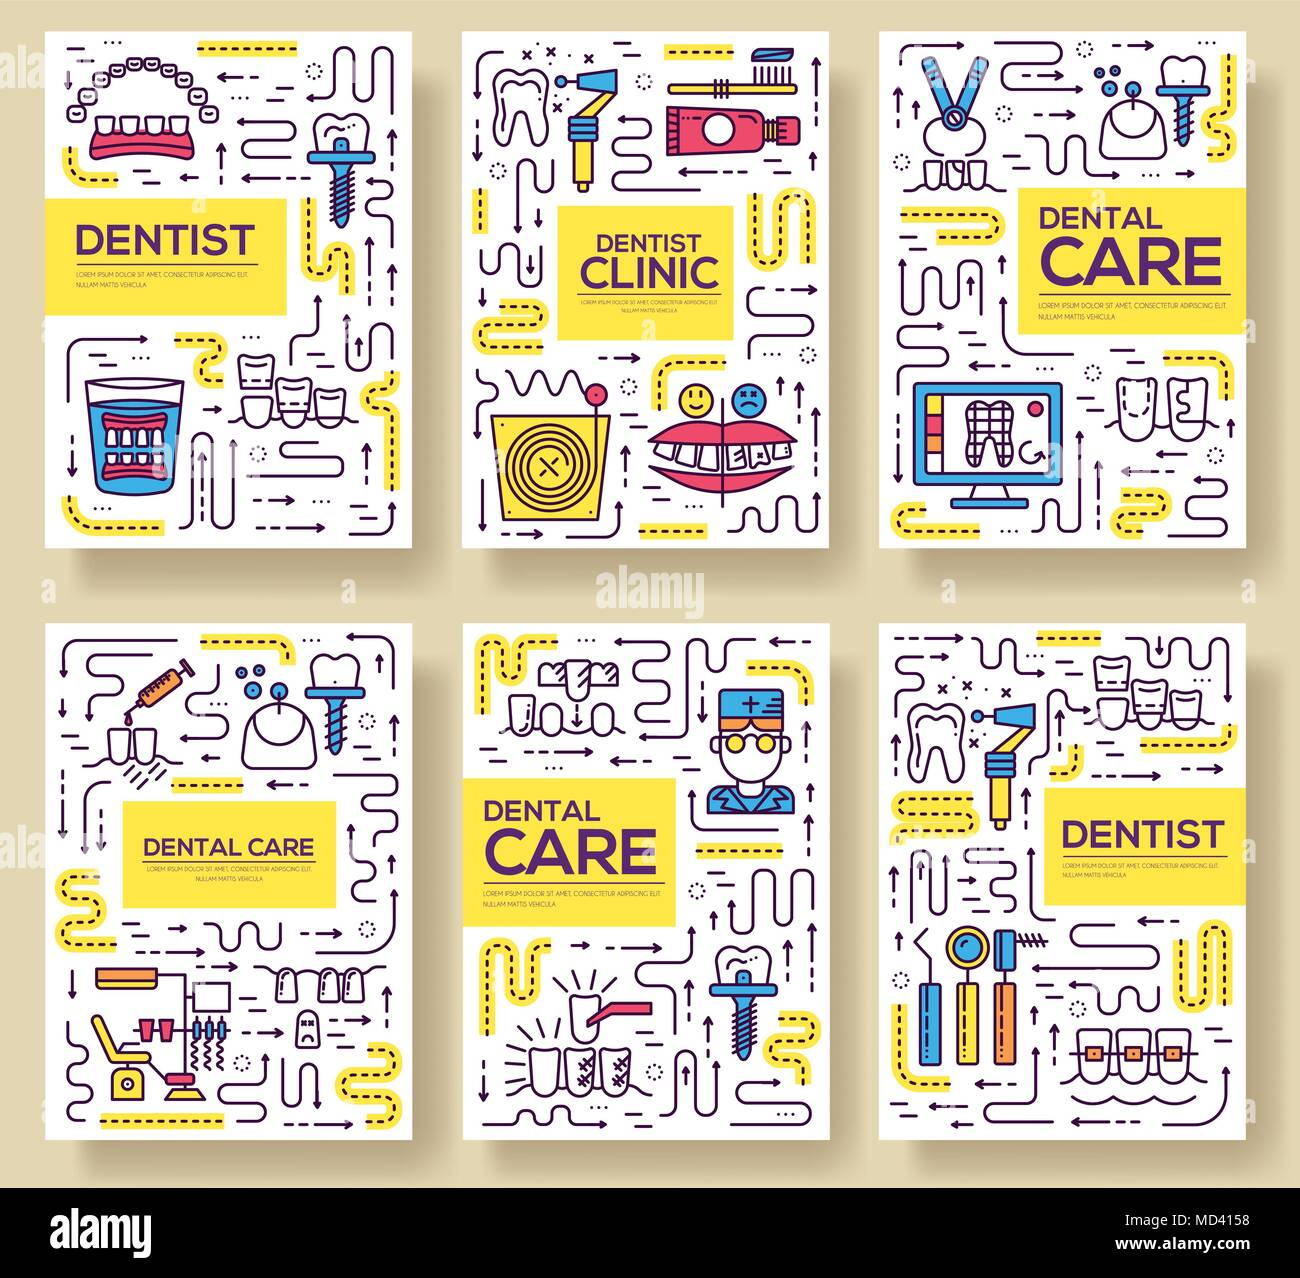 Thin line dentist clinic baking brochure cards set dent instruments thin line dentist clinic baking brochure cards set dent instruments template of flyear magazines poster book cover banners outline medical invitation stopboris Choice Image